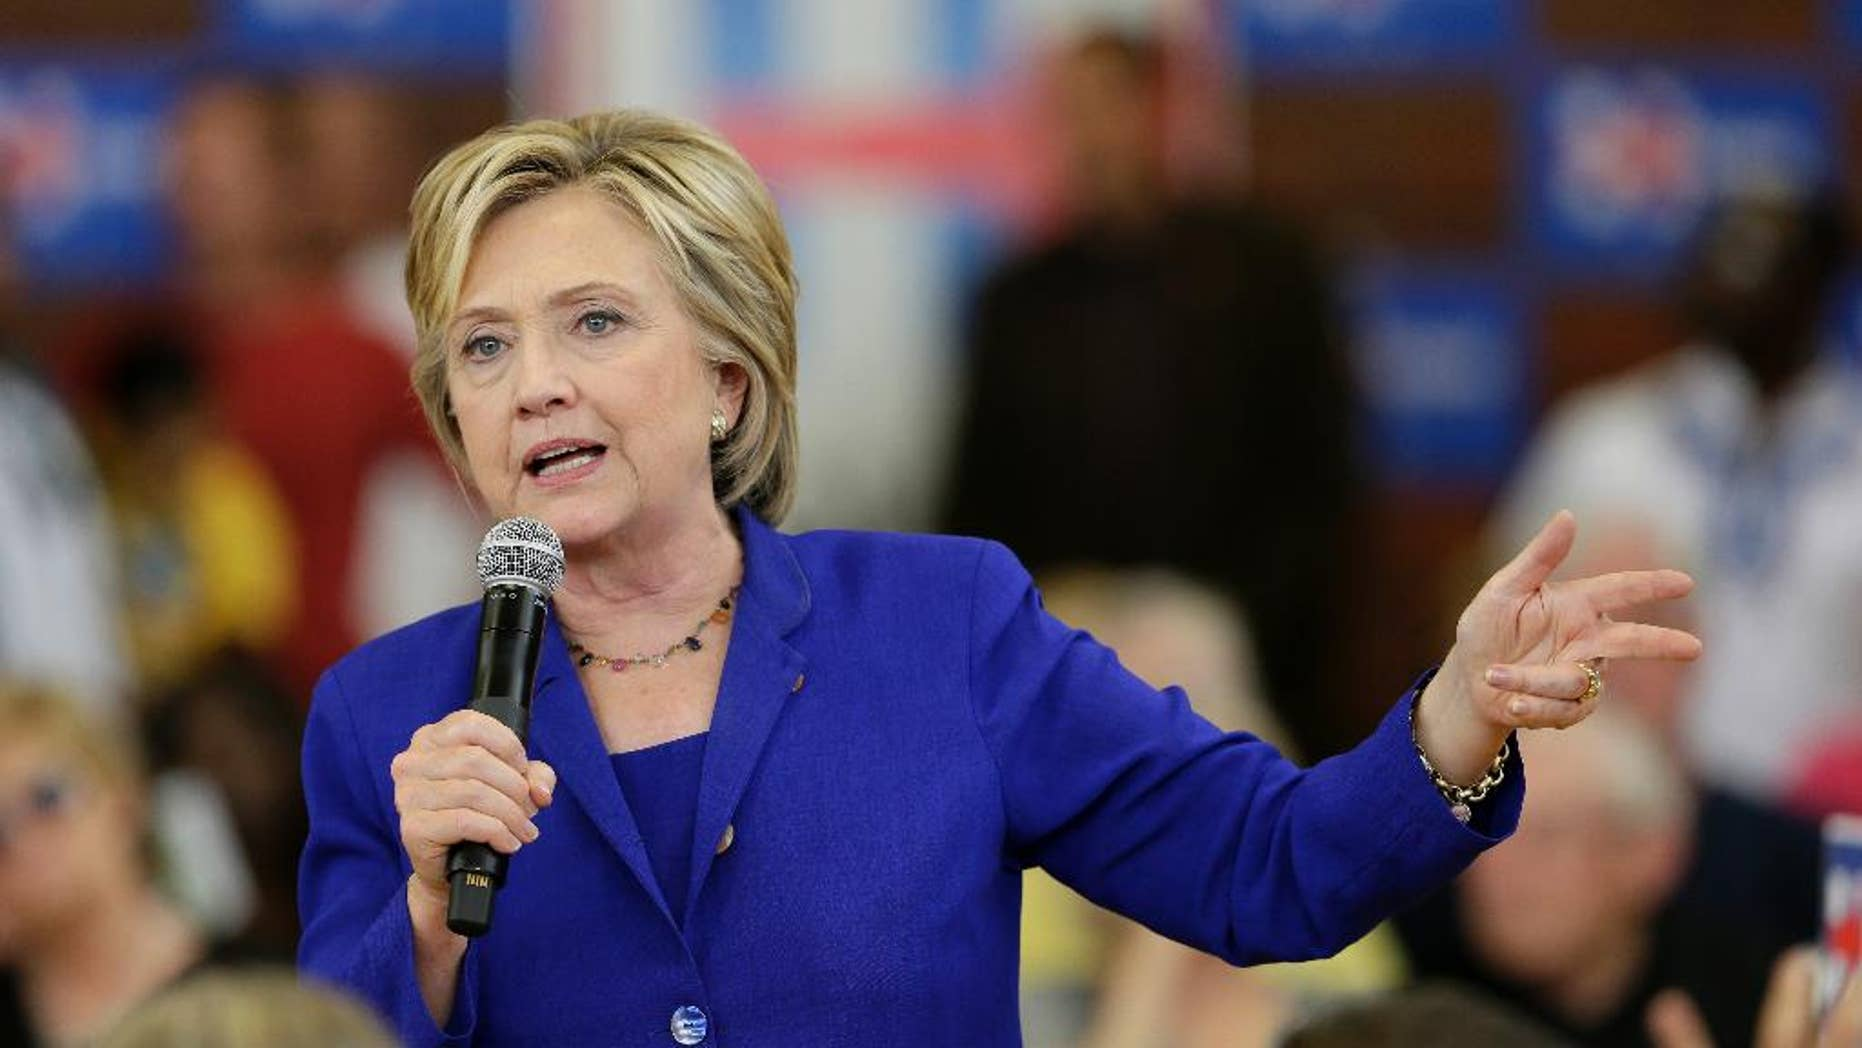 """In this Sept. 22, 2015 file photo, Democratic presidential candidate Hillary Rodham Clinton speaks during a community forum on healthcare, at Moulton Elementary School in Des Moines, Iowa. A Chinese government official said Monday, Sept. 28, 2015,  that Hillary Clinton was """"biased"""" on women's issues in China, while a newspaper compared the presidential hopeful to Donald Trump for her tweet saying it was """"shameless"""" for China's president to preside over a U.N. conference on gender equality. (AP Photo/Charlie Neibergall, File)"""